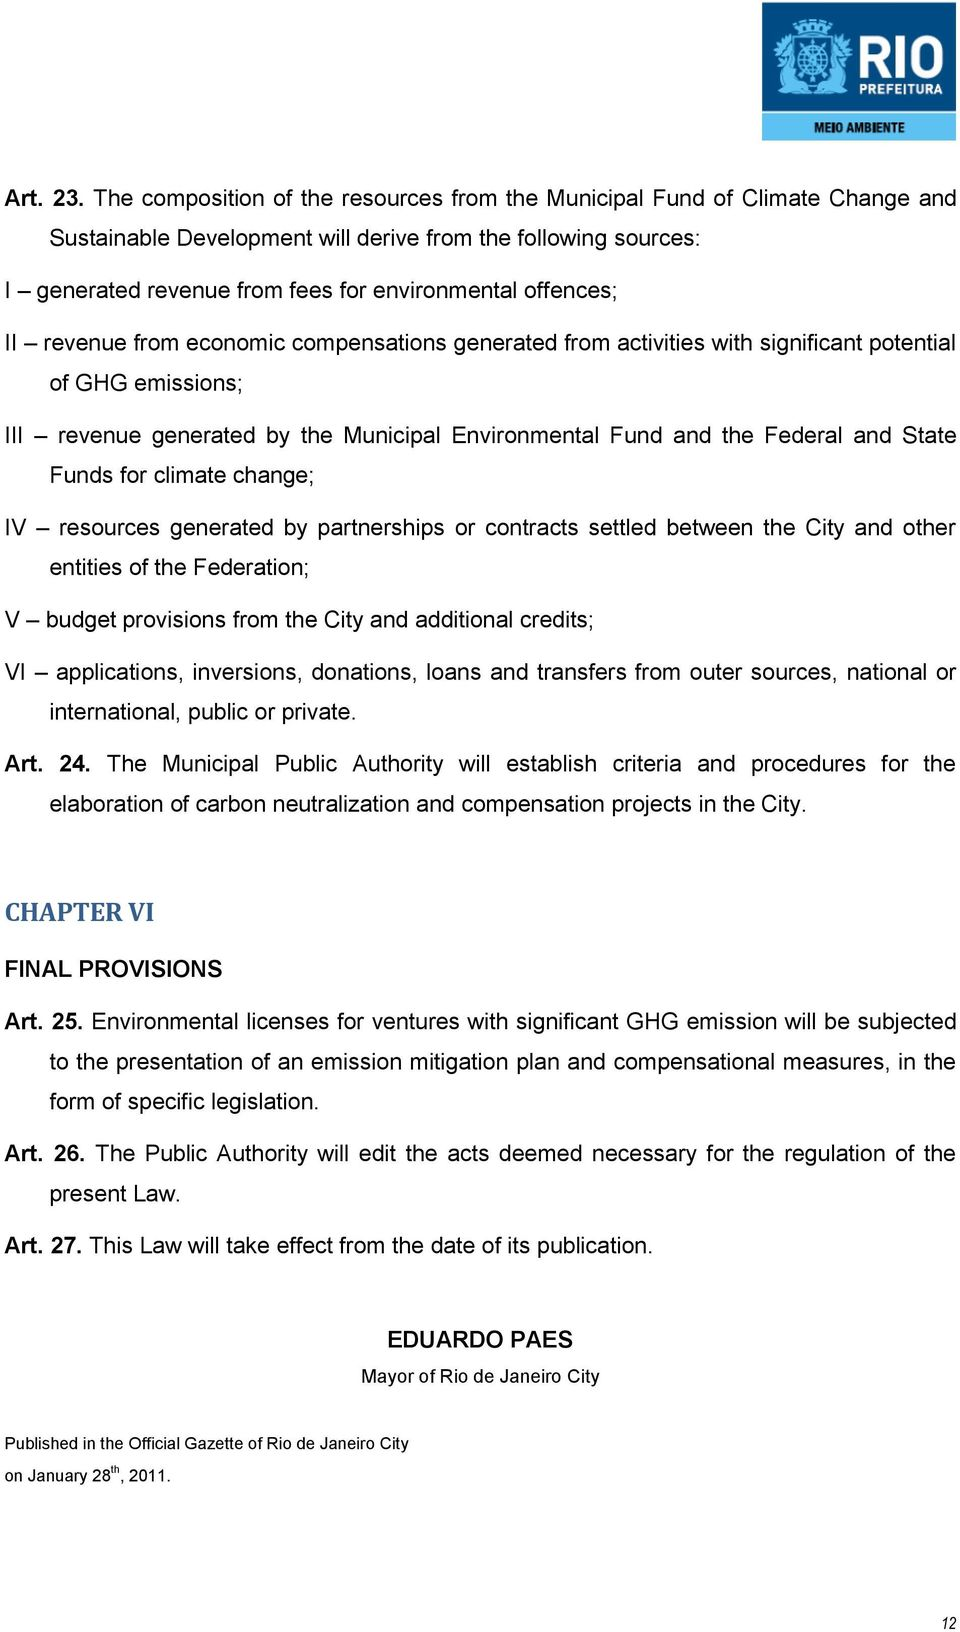 offences; II revenue from economic compensations generated from activities with significant potential of GHG emissions; III revenue generated by the Municipal Environmental Fund and the Federal and